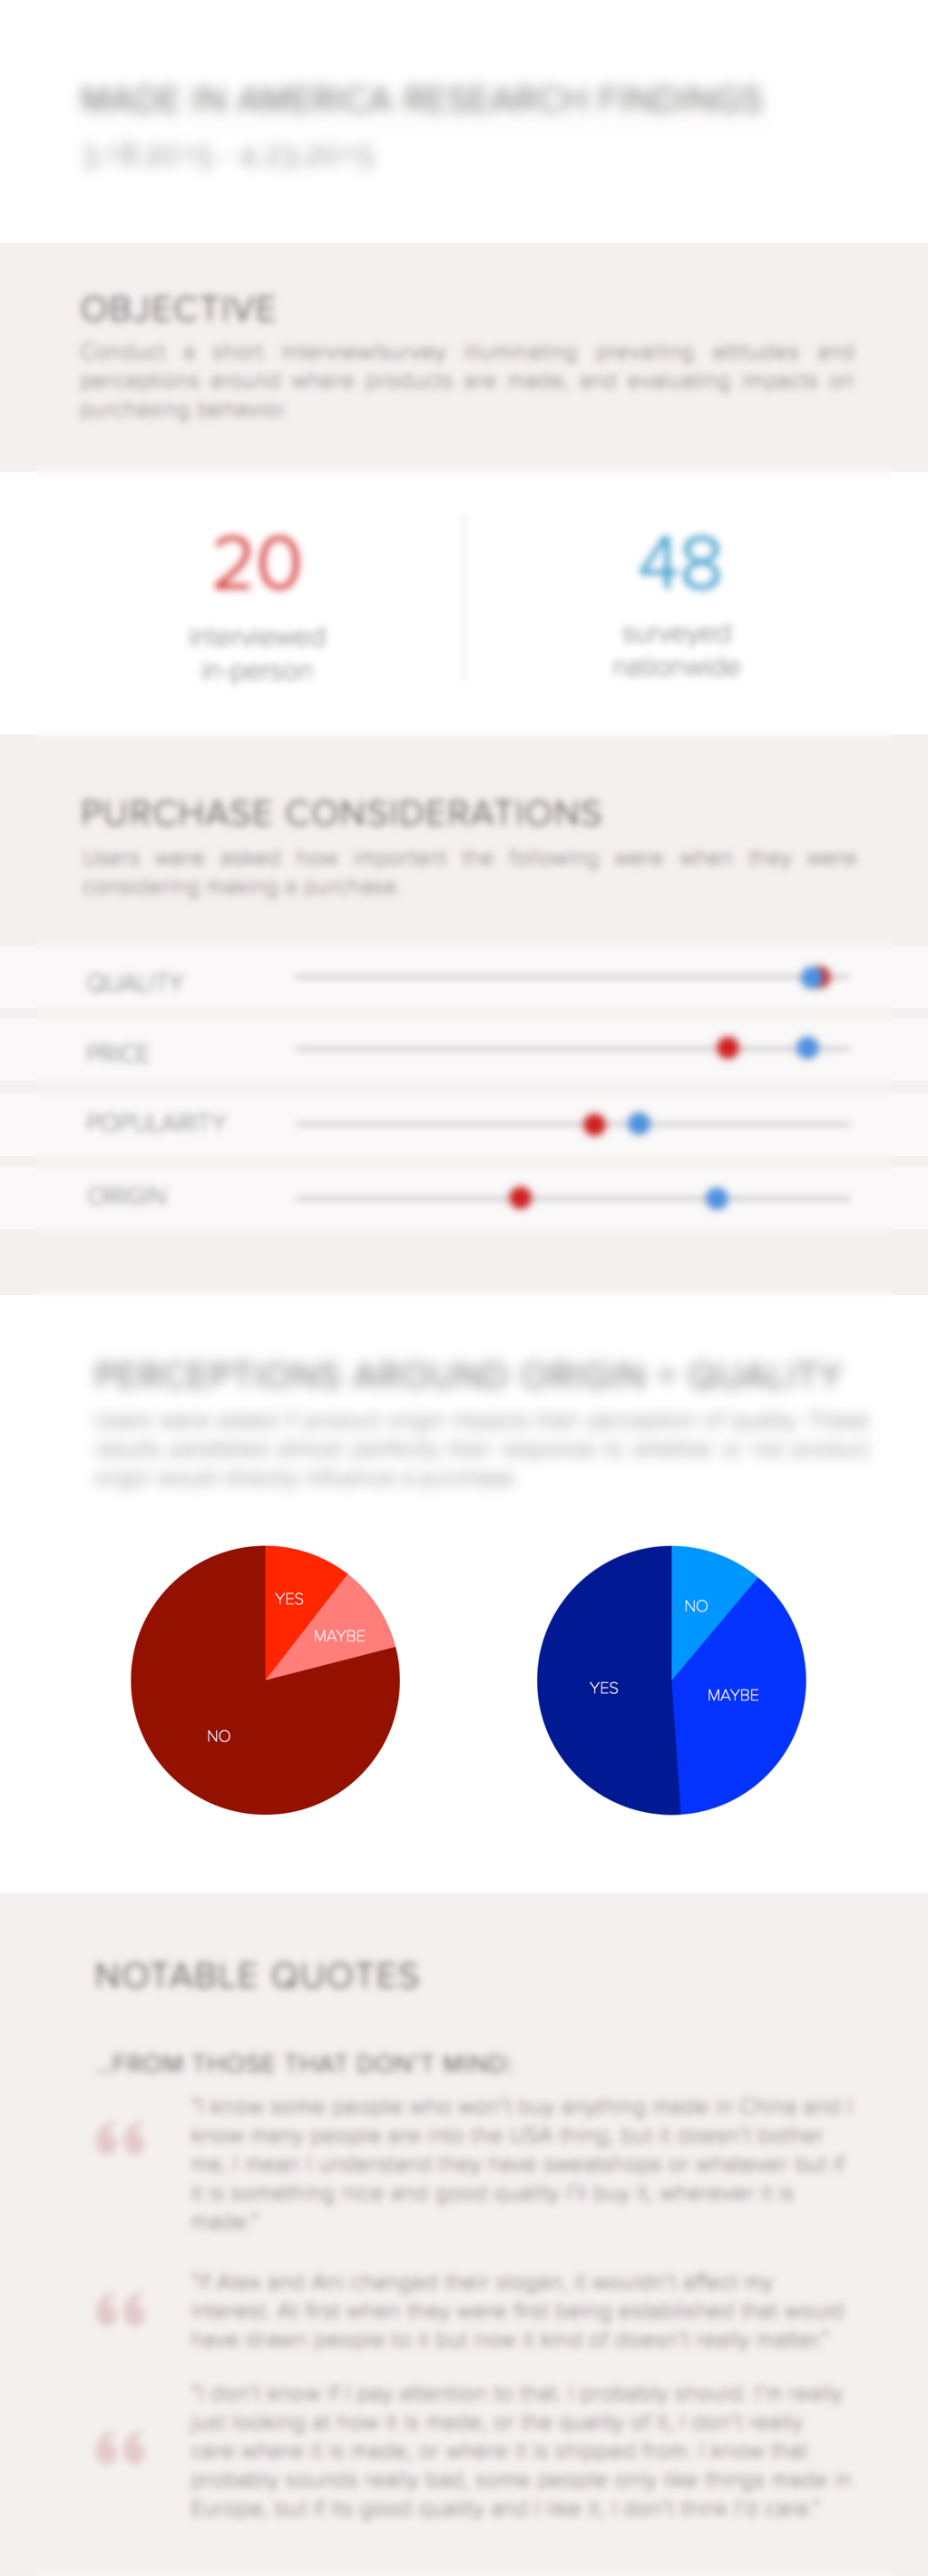 Another example of a UX digest sent to clients. Visual presentation of data always makes things easier to understand!